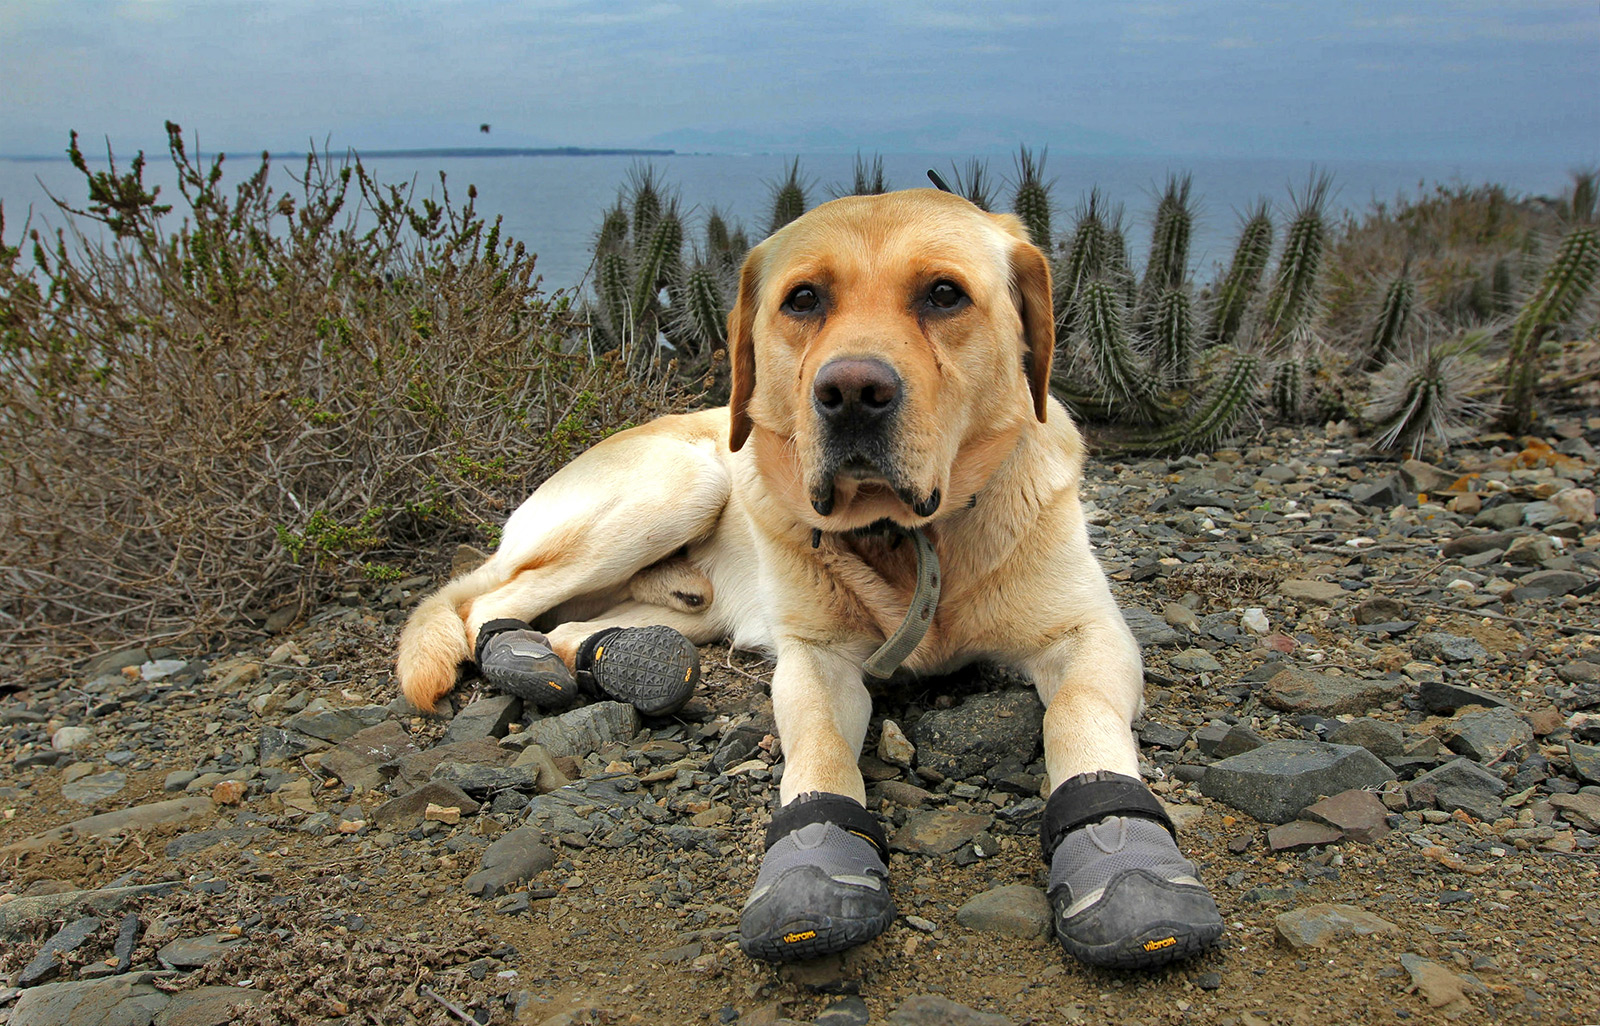 island conservation Finn trained dog invasive species chile Pingüino de Humboldt